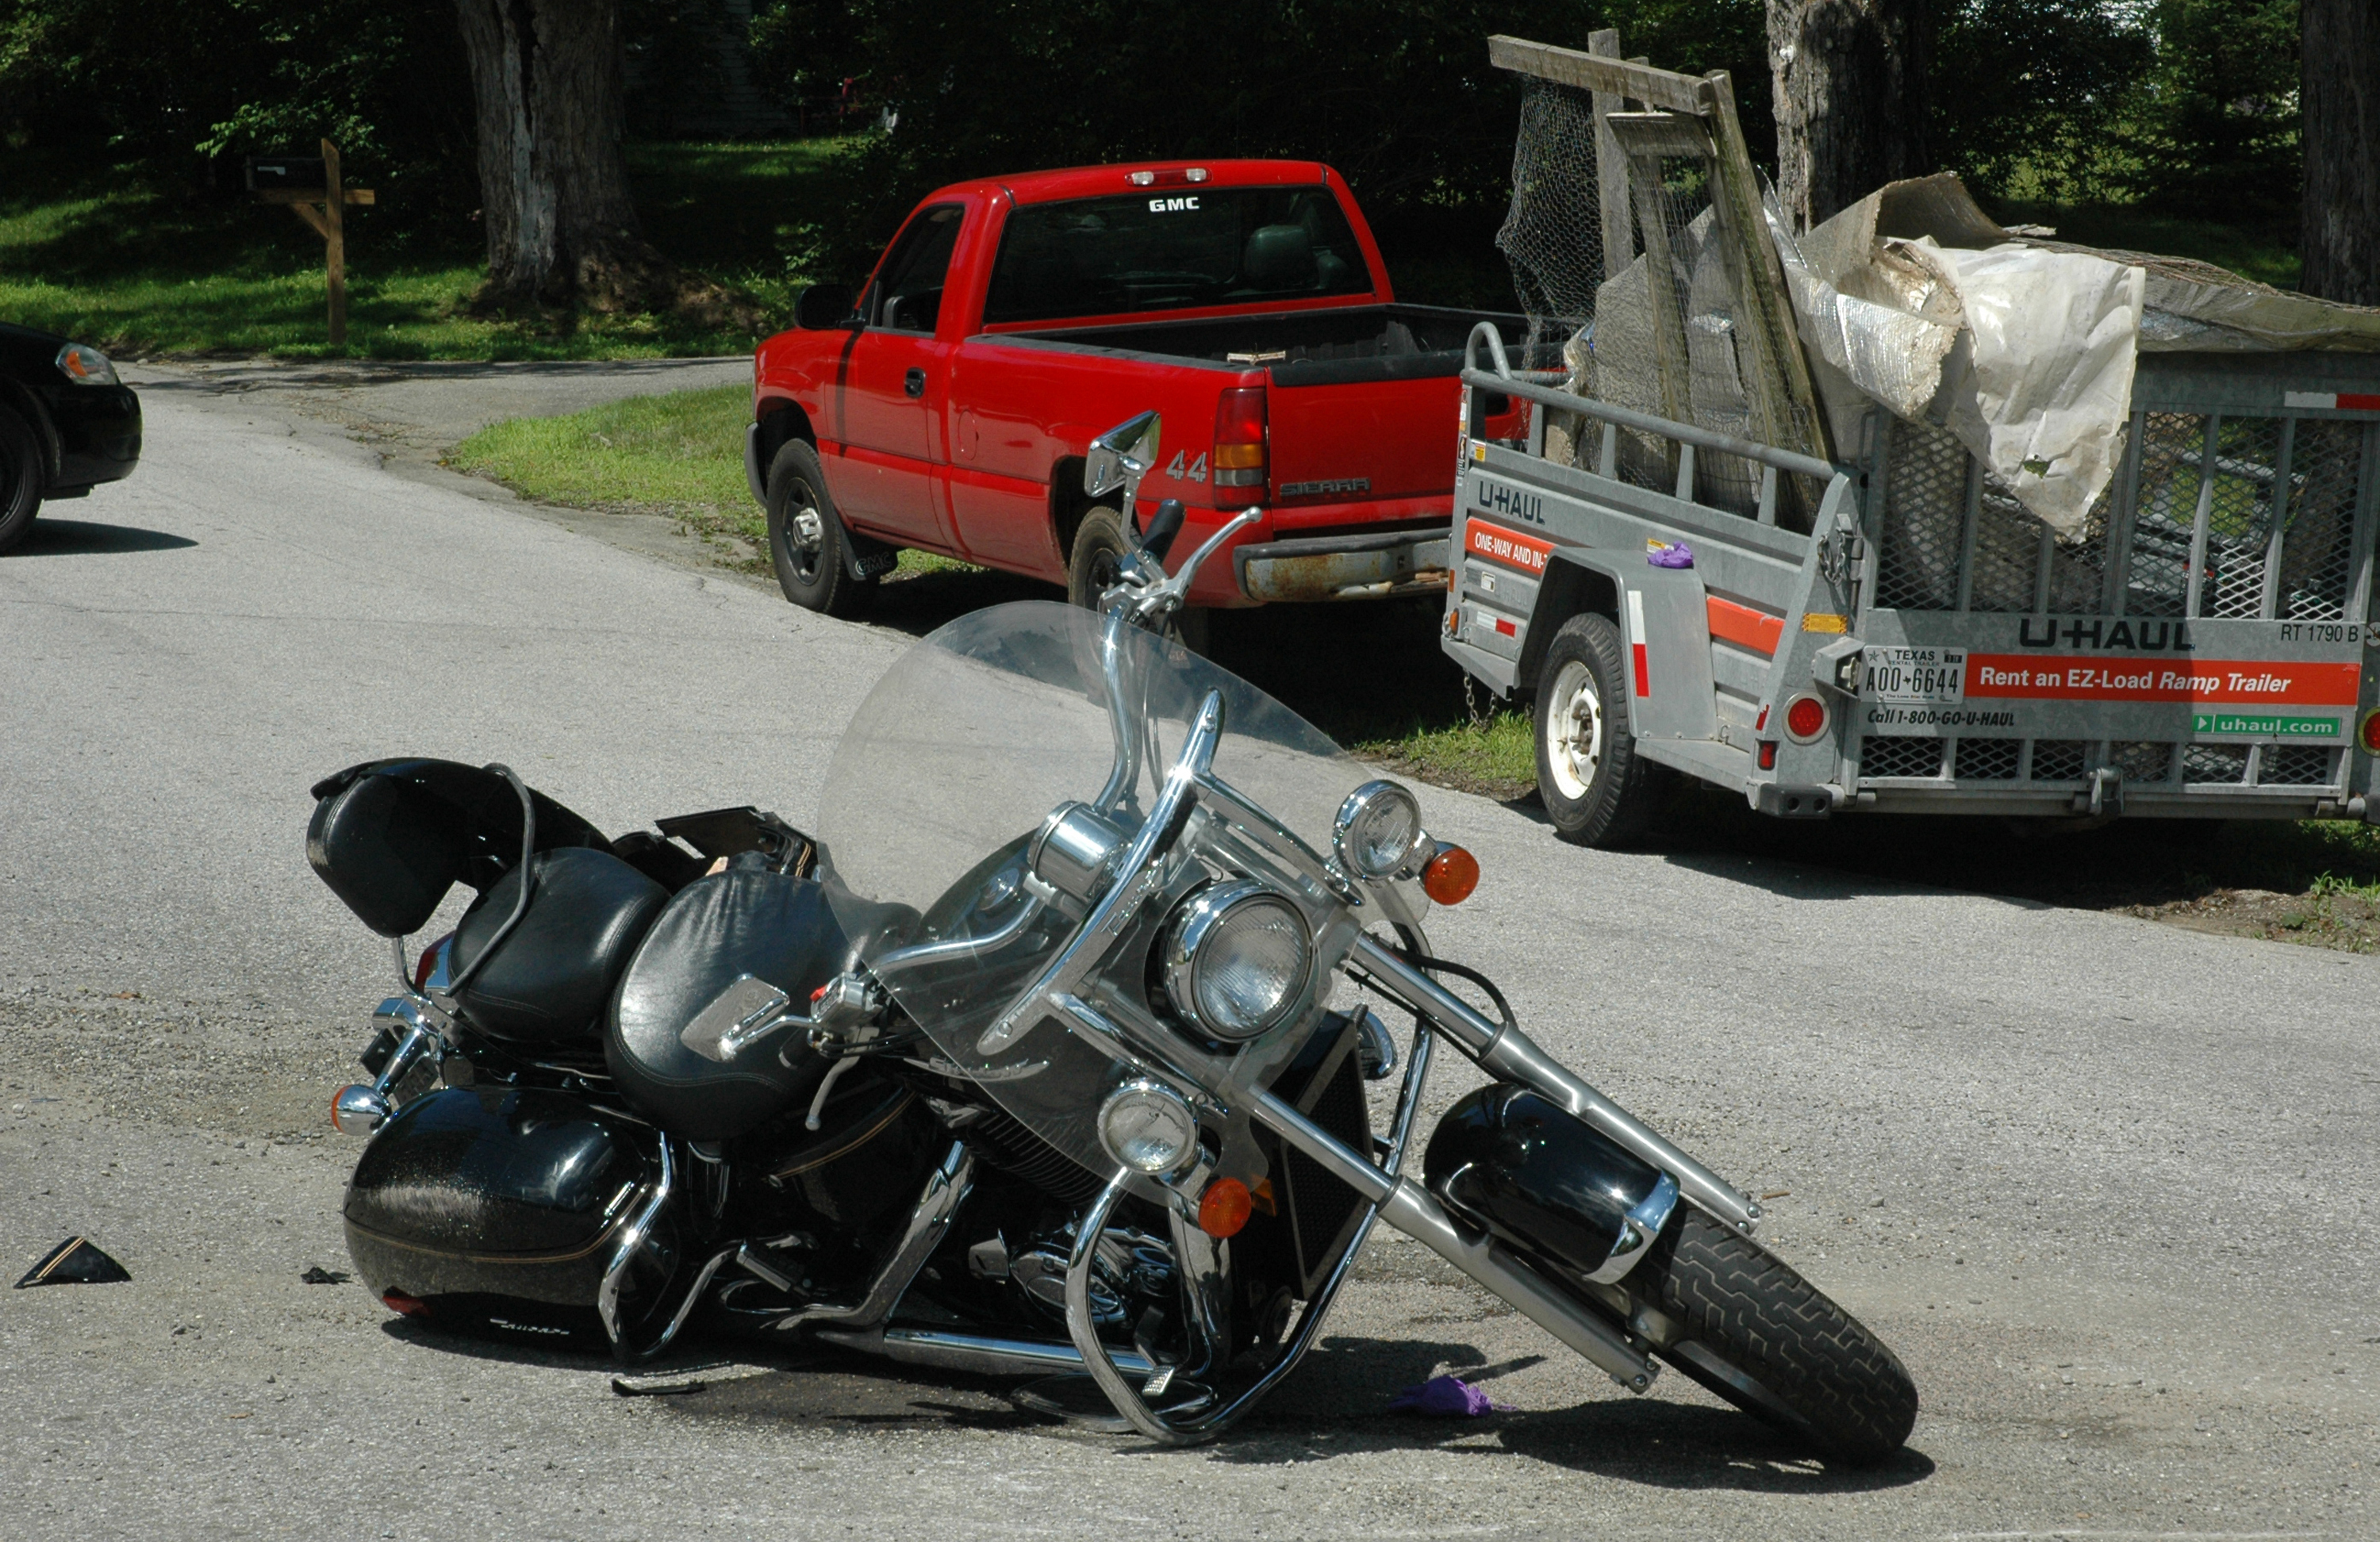 A helicopter flew a motorcyclist to the hospital after a collision with a pickup truck at the intersection of Route 220 and Old Augusta Road in Waldoboro on Sunday, July 2. (Alexander Violo photo)